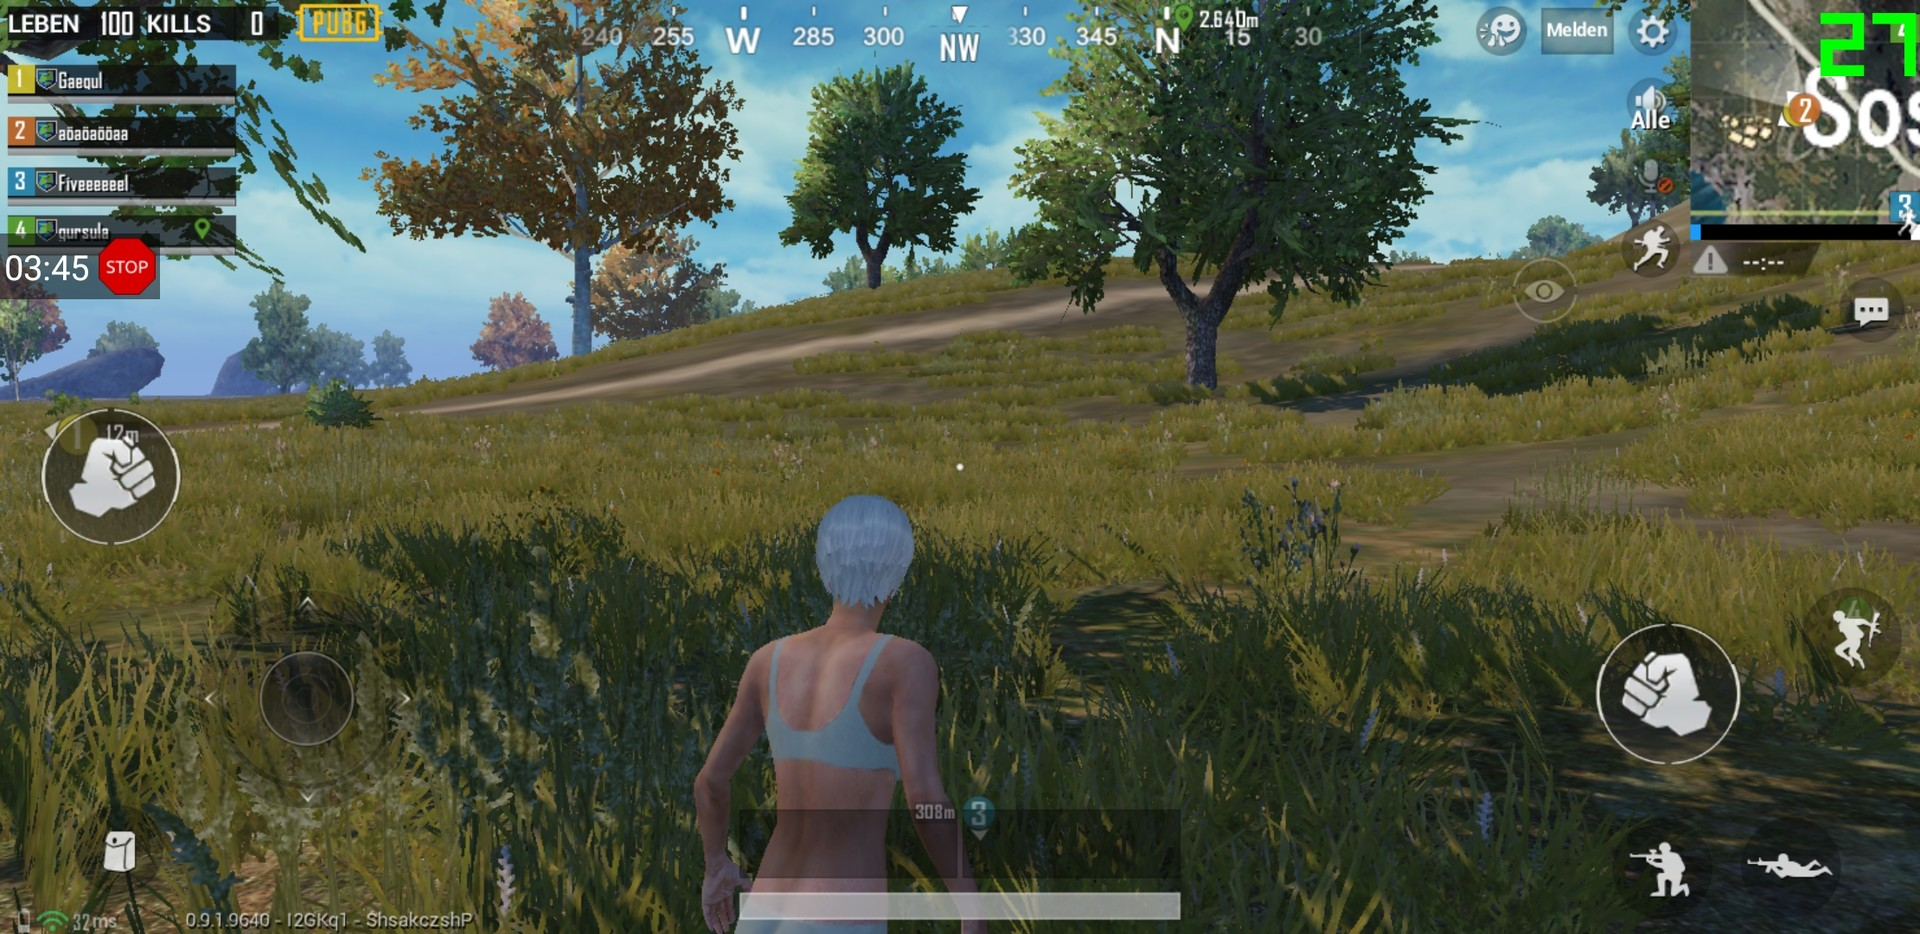 Pubg Hd Graphics 620: Samsung Galaxy A7 (2018) Smartphone Review